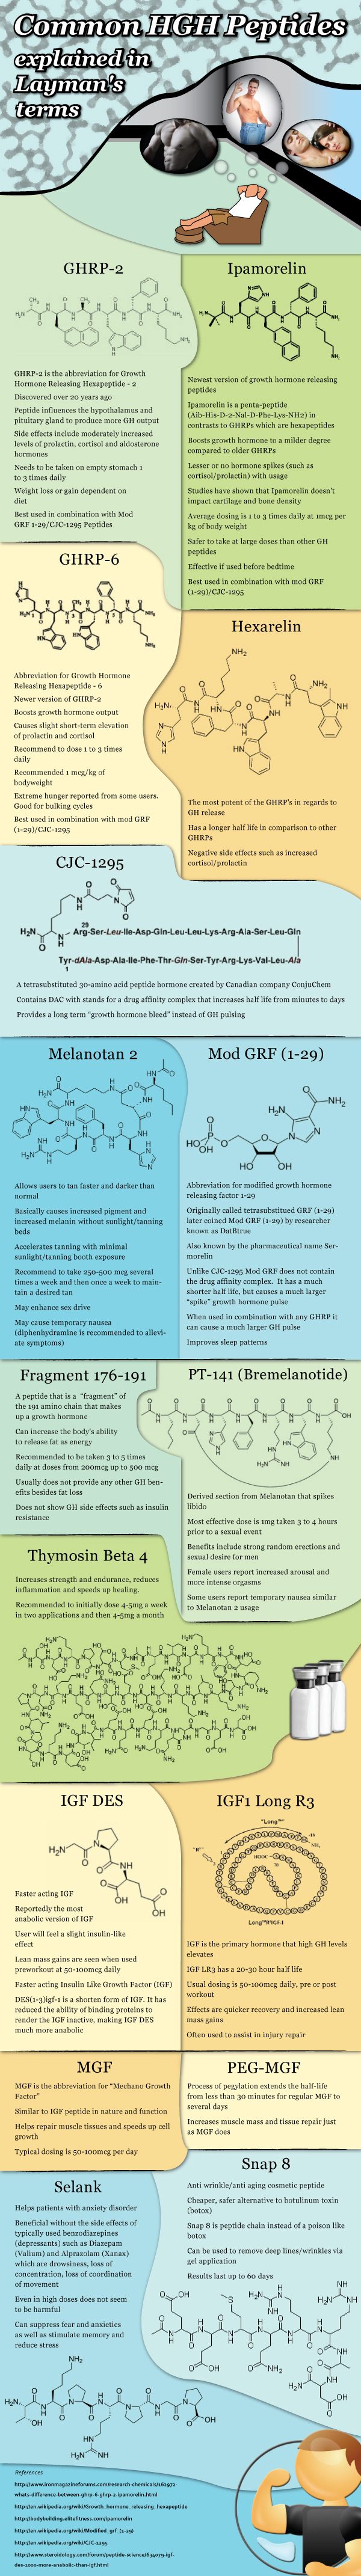 Common HGH Peptides explained in Layman's terms [Infographic]